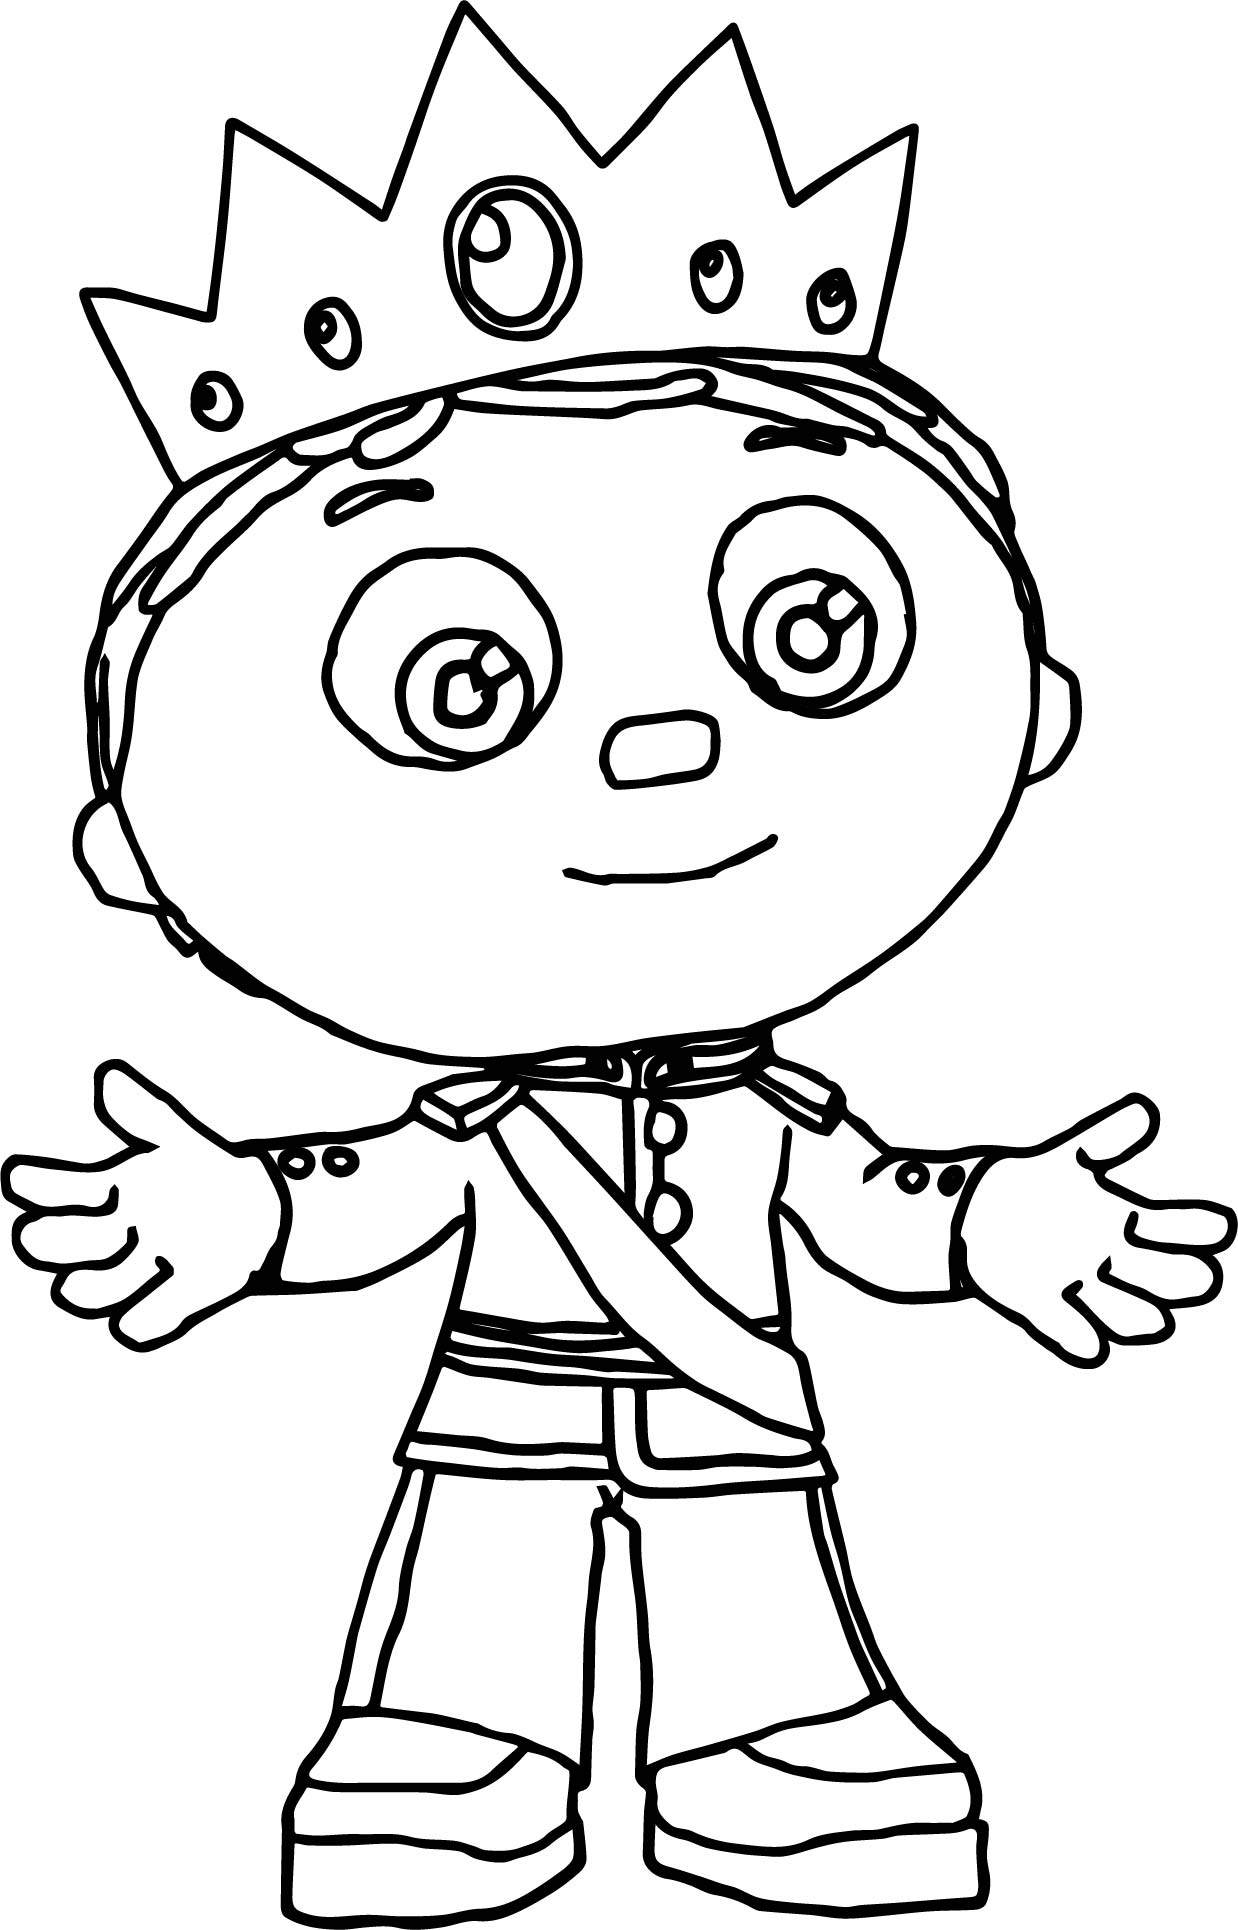 King Whyatt W O Mantle Super Why Coloring Page